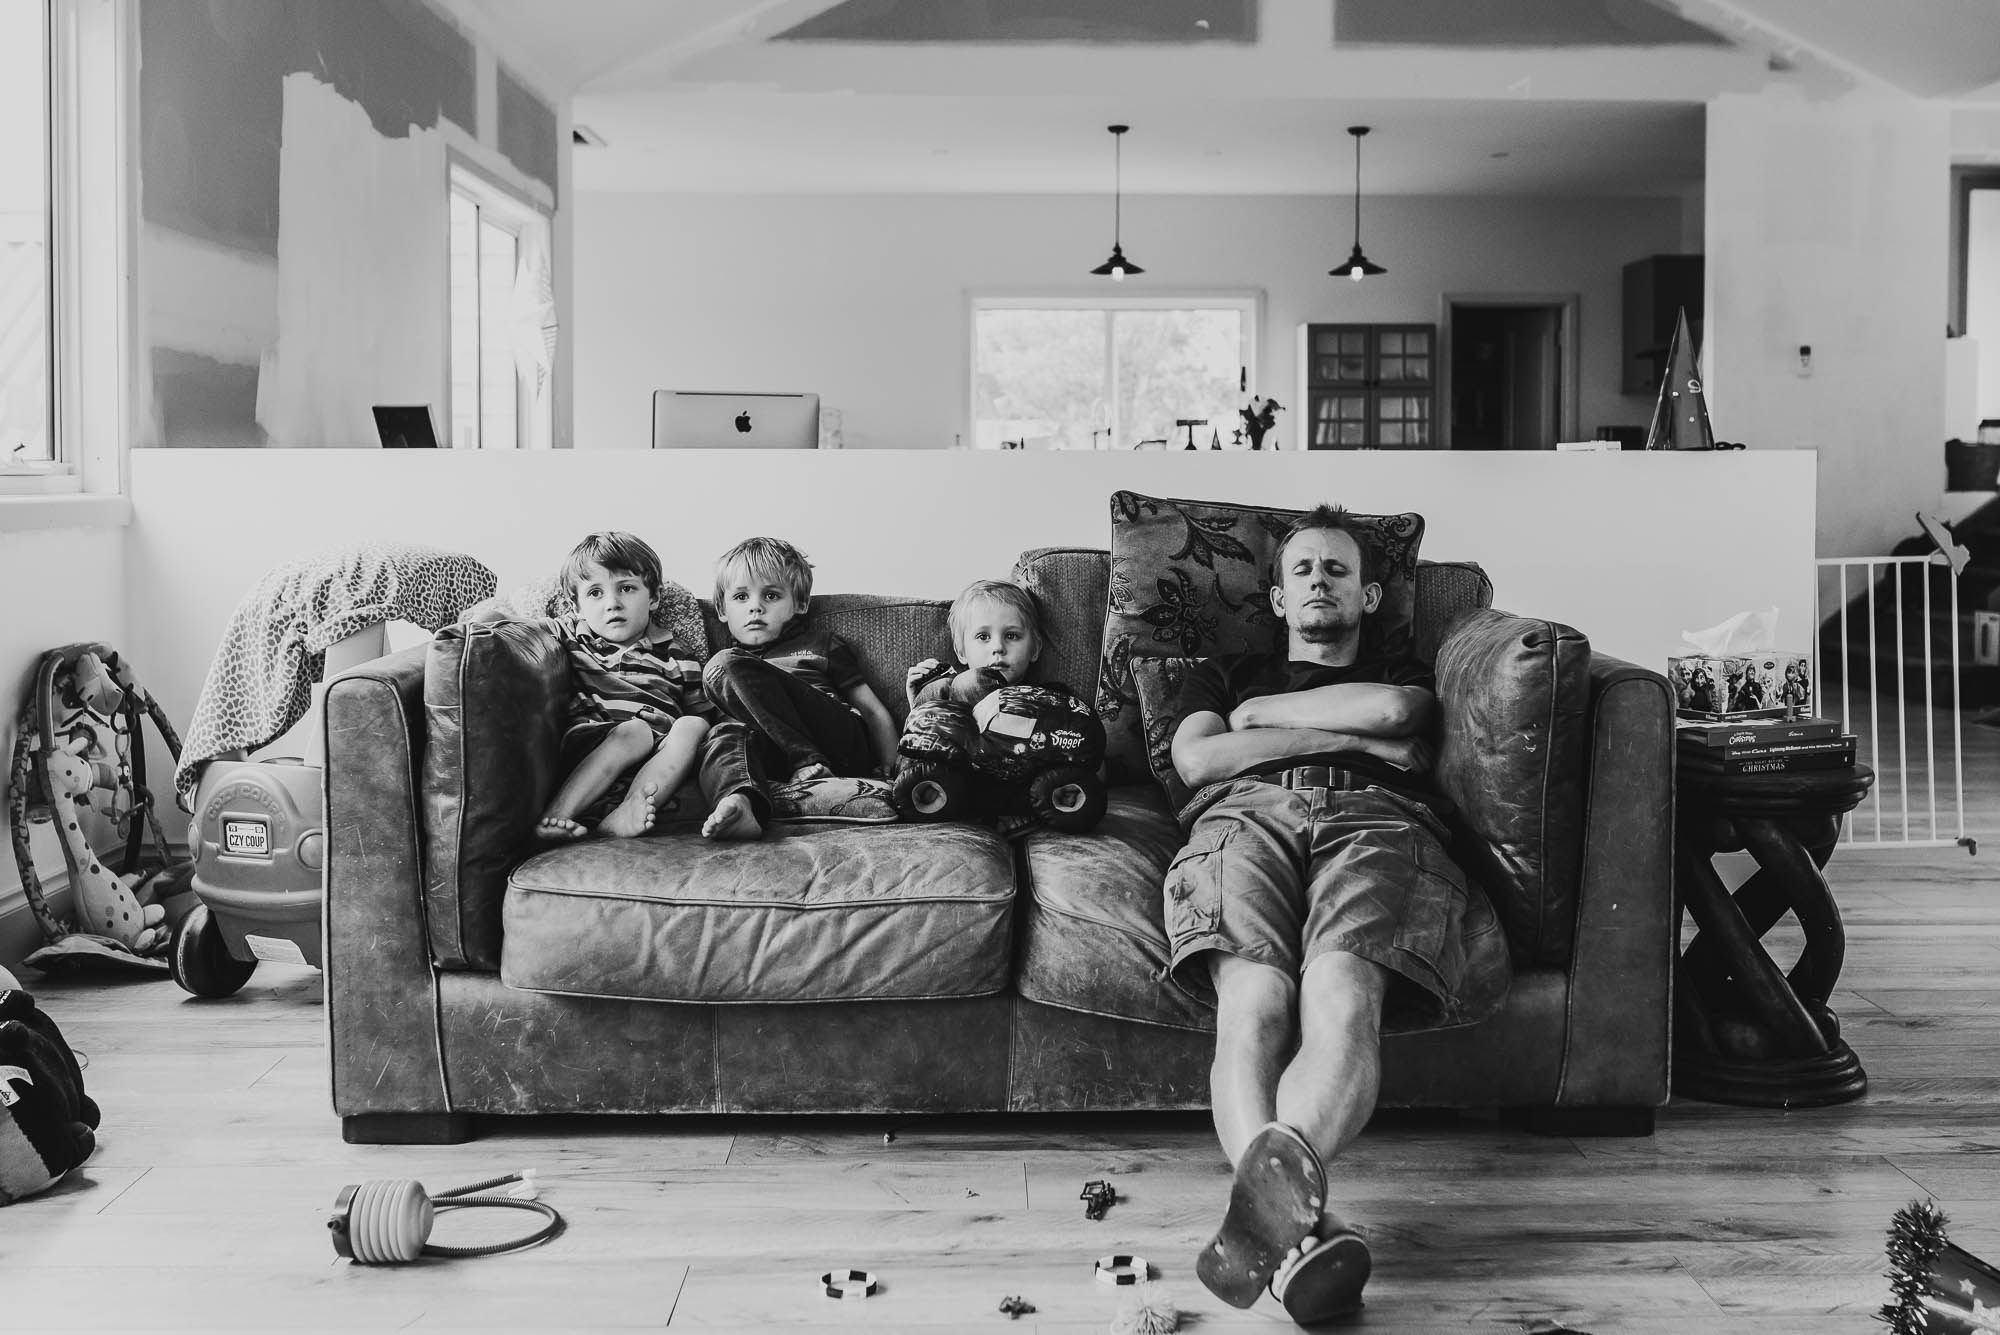 dad-asleep-on-sofa-with-children-awake-next-to-him-and-toys-all-around